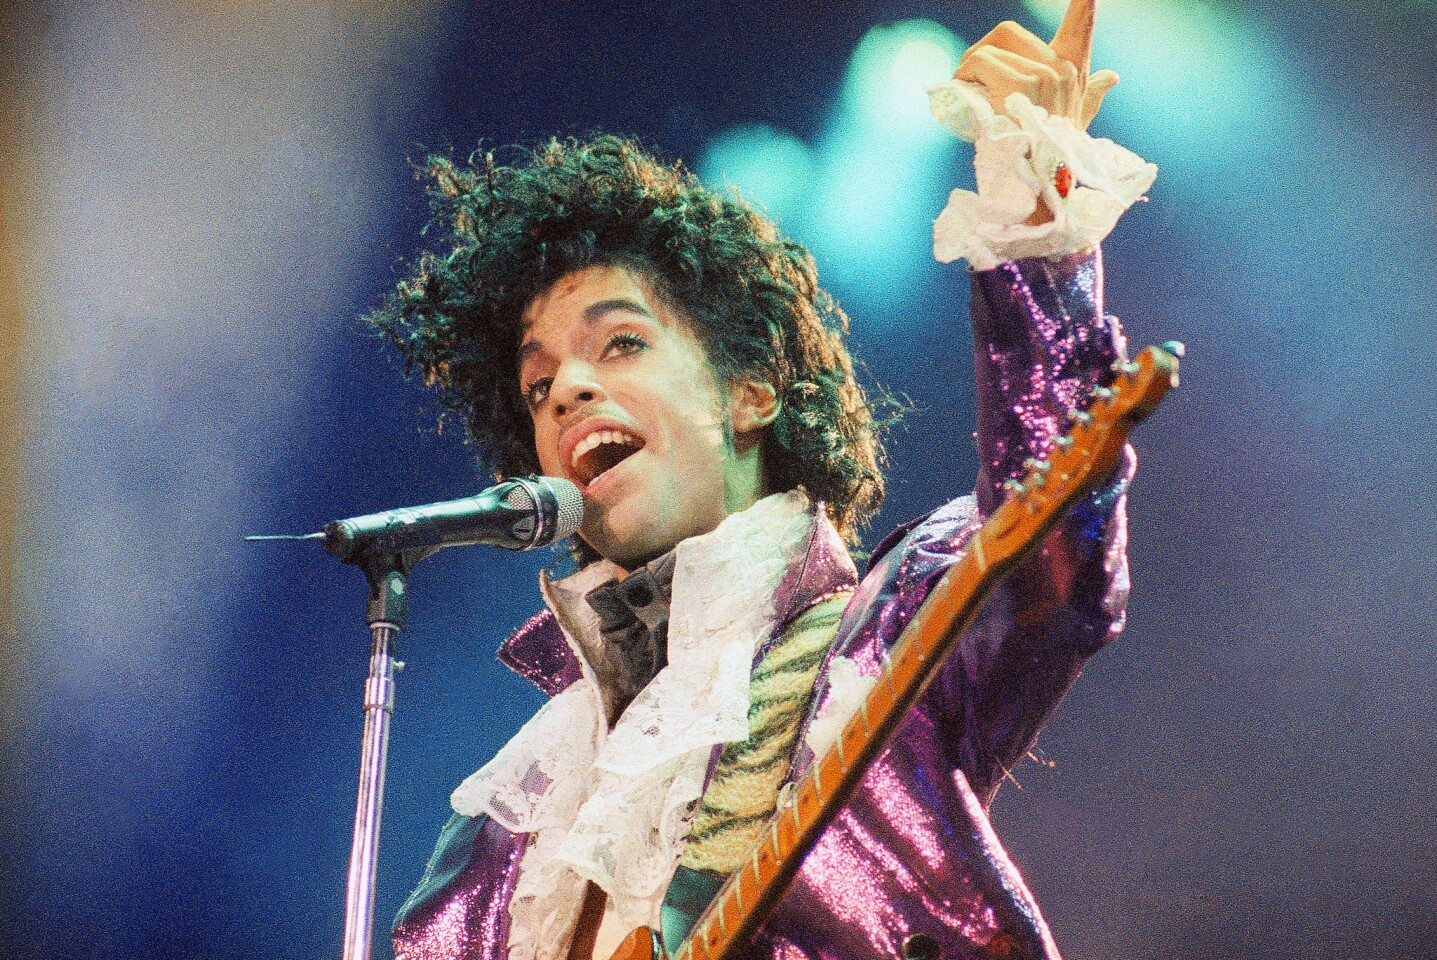 Prince performs at the Forum in Inglewood on Feb. 18, 1985.